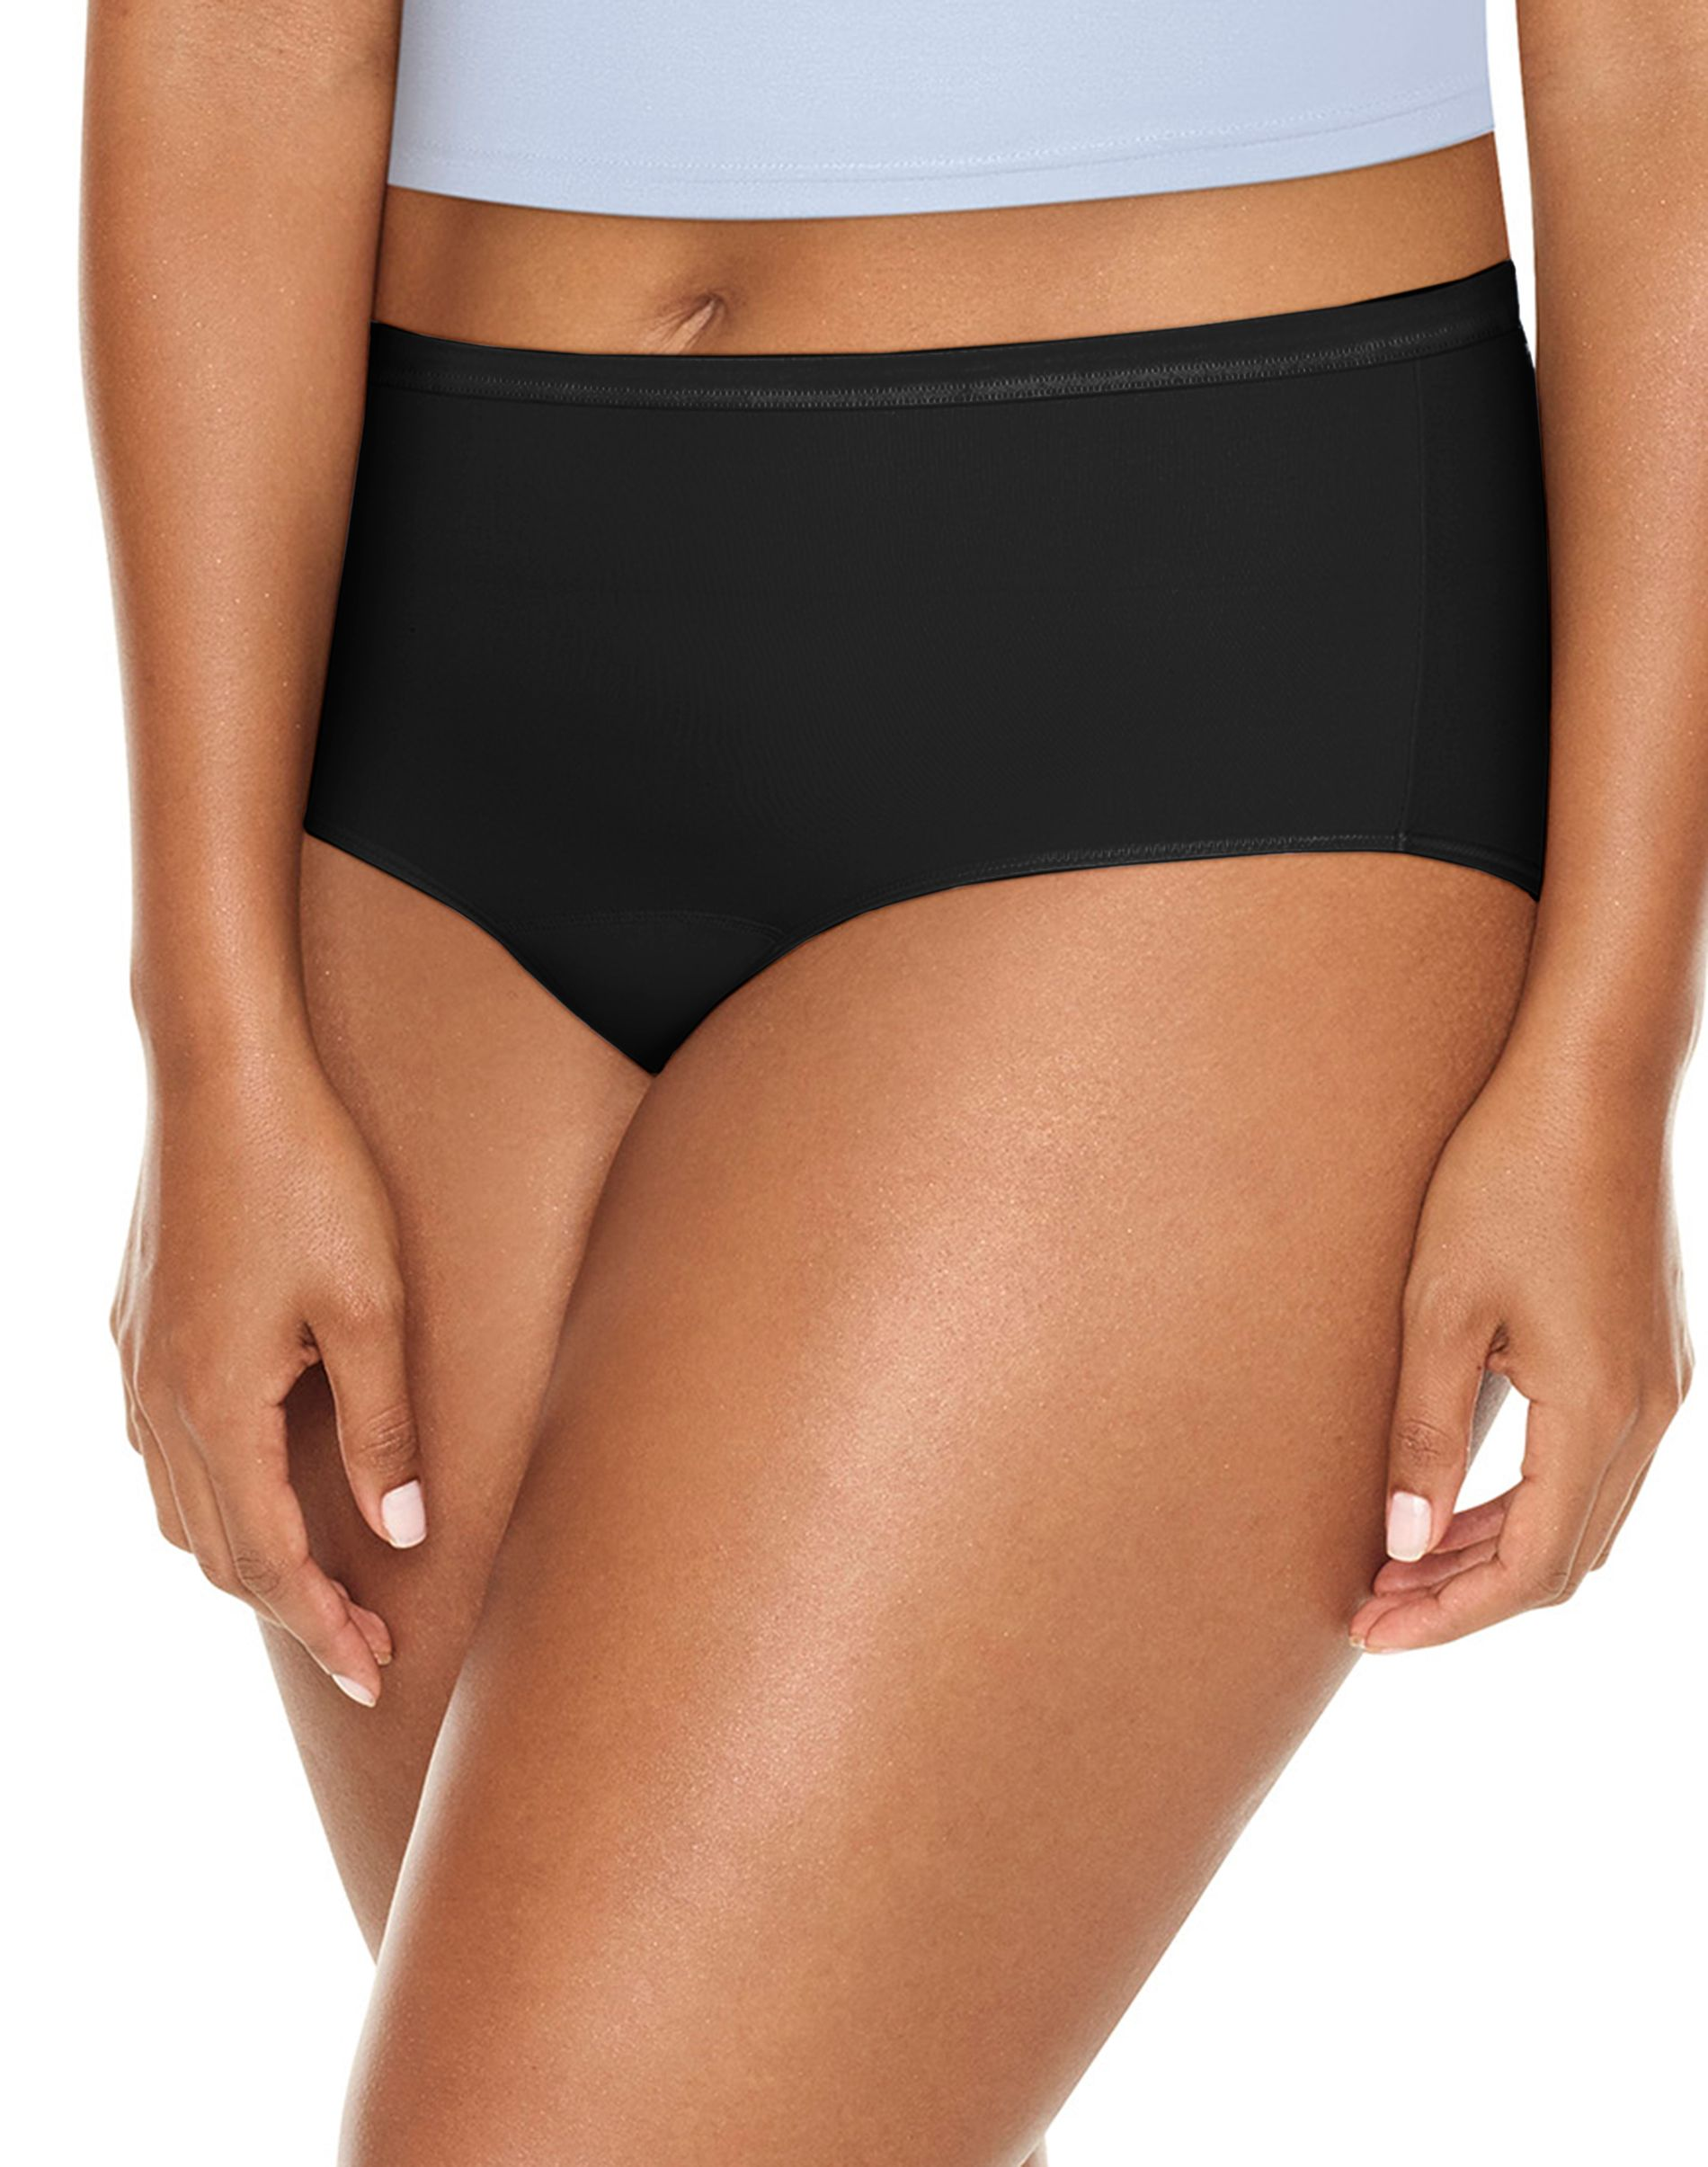 jms fresh & dry leak protection liner all black brief 3-pack women Just My Size